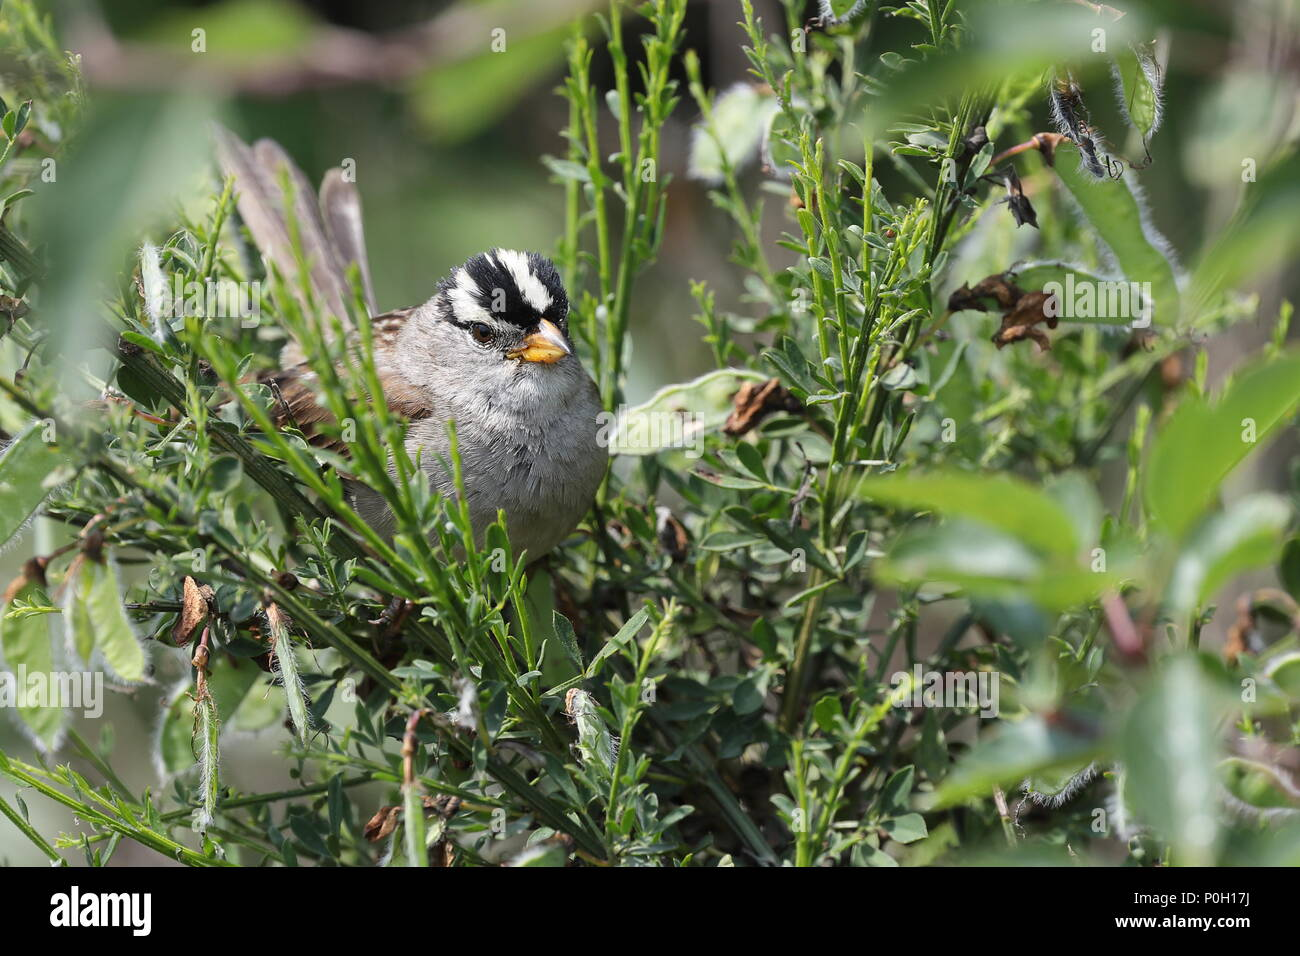 White-crowned Sparrow - Stock Image